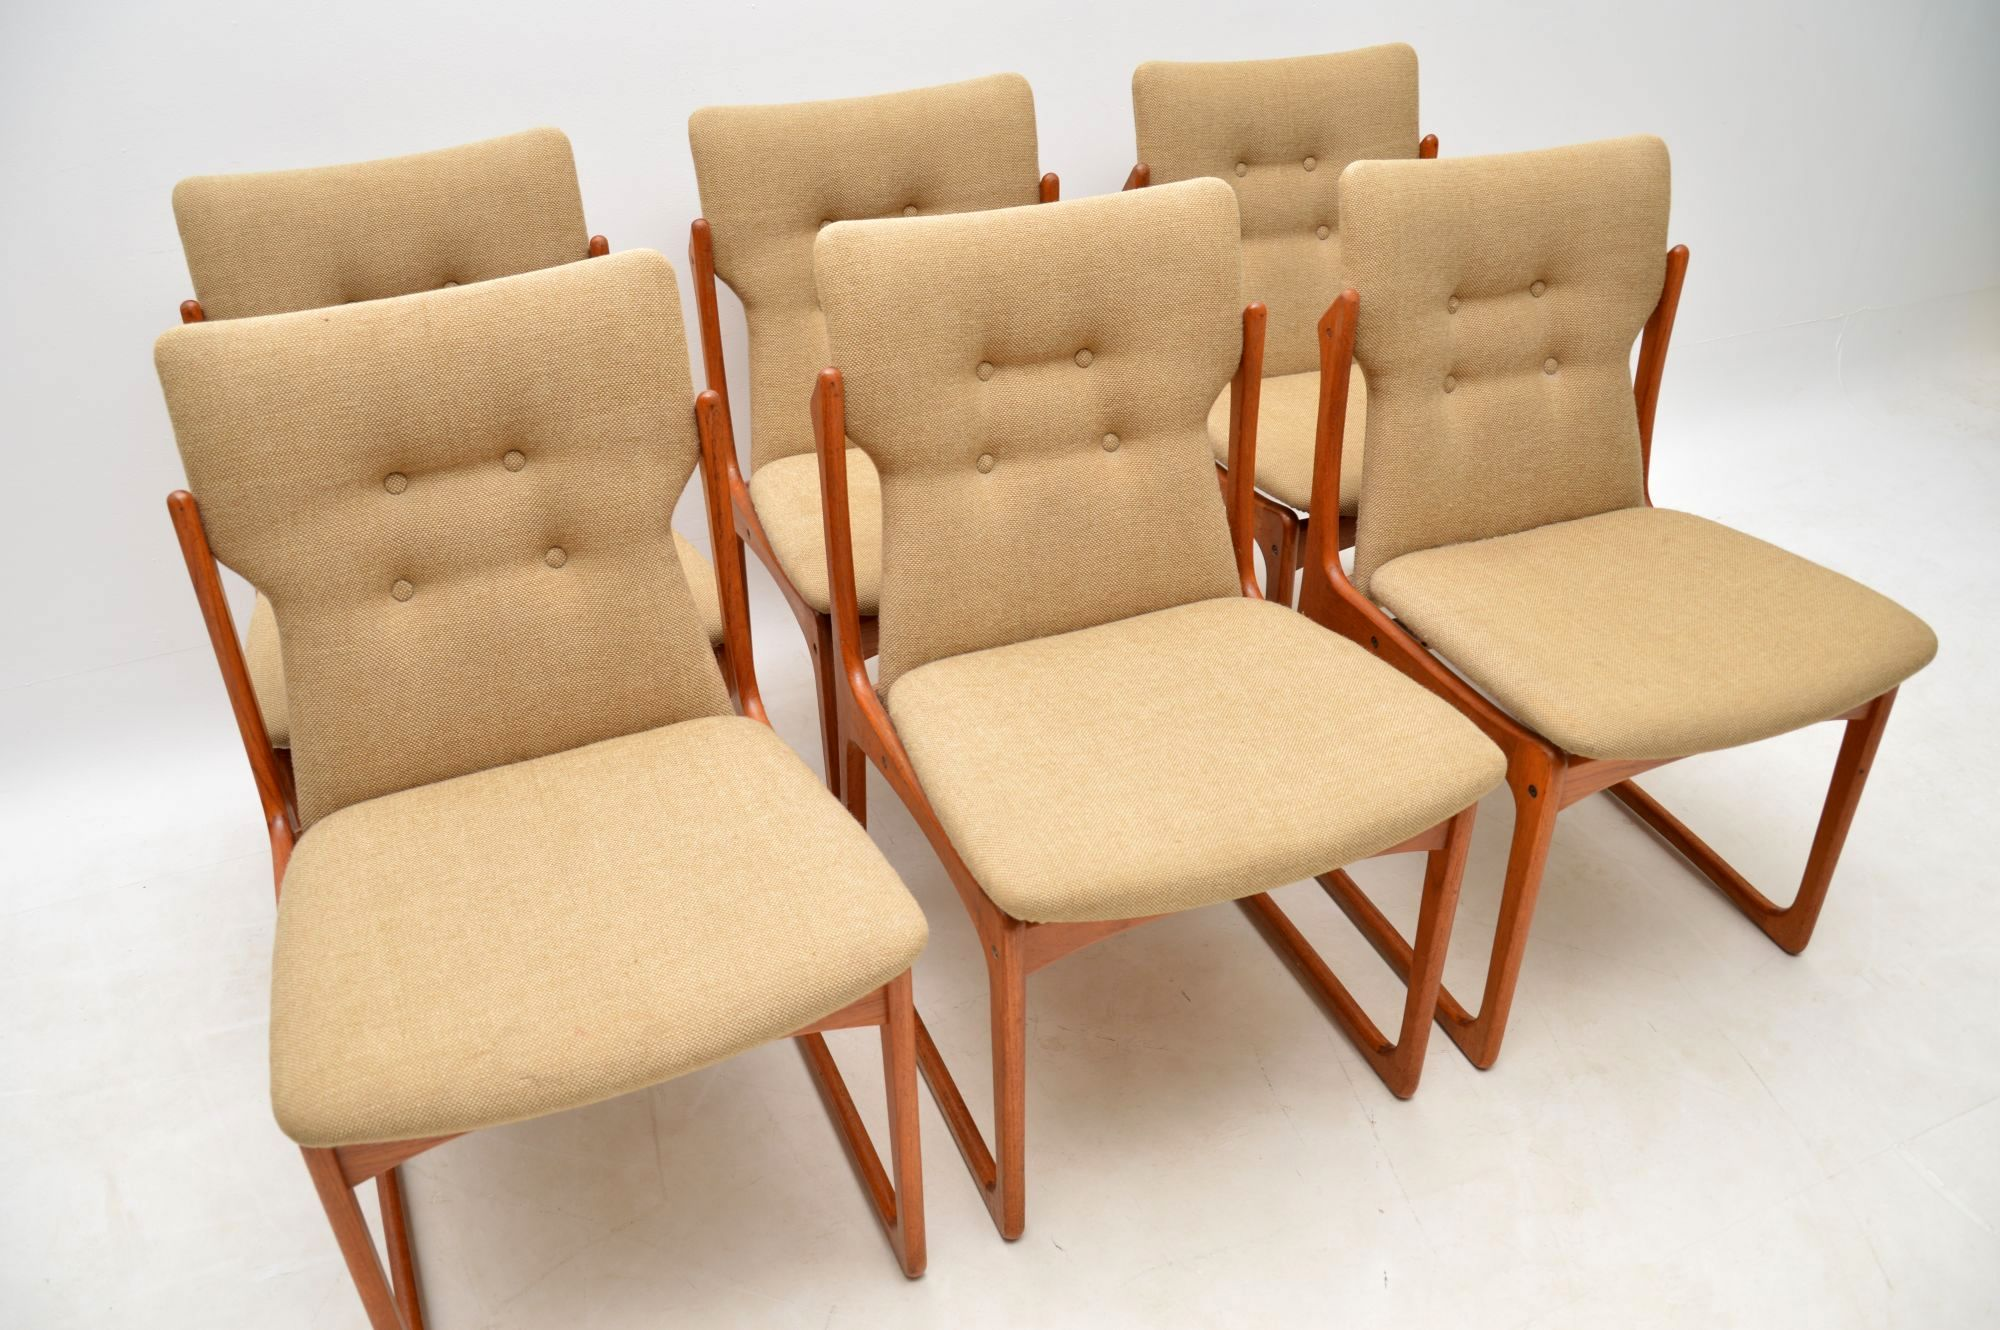 8a6164be56d00 ... 1960 s Set of Danish Vintage Teak Dining Chairs ...